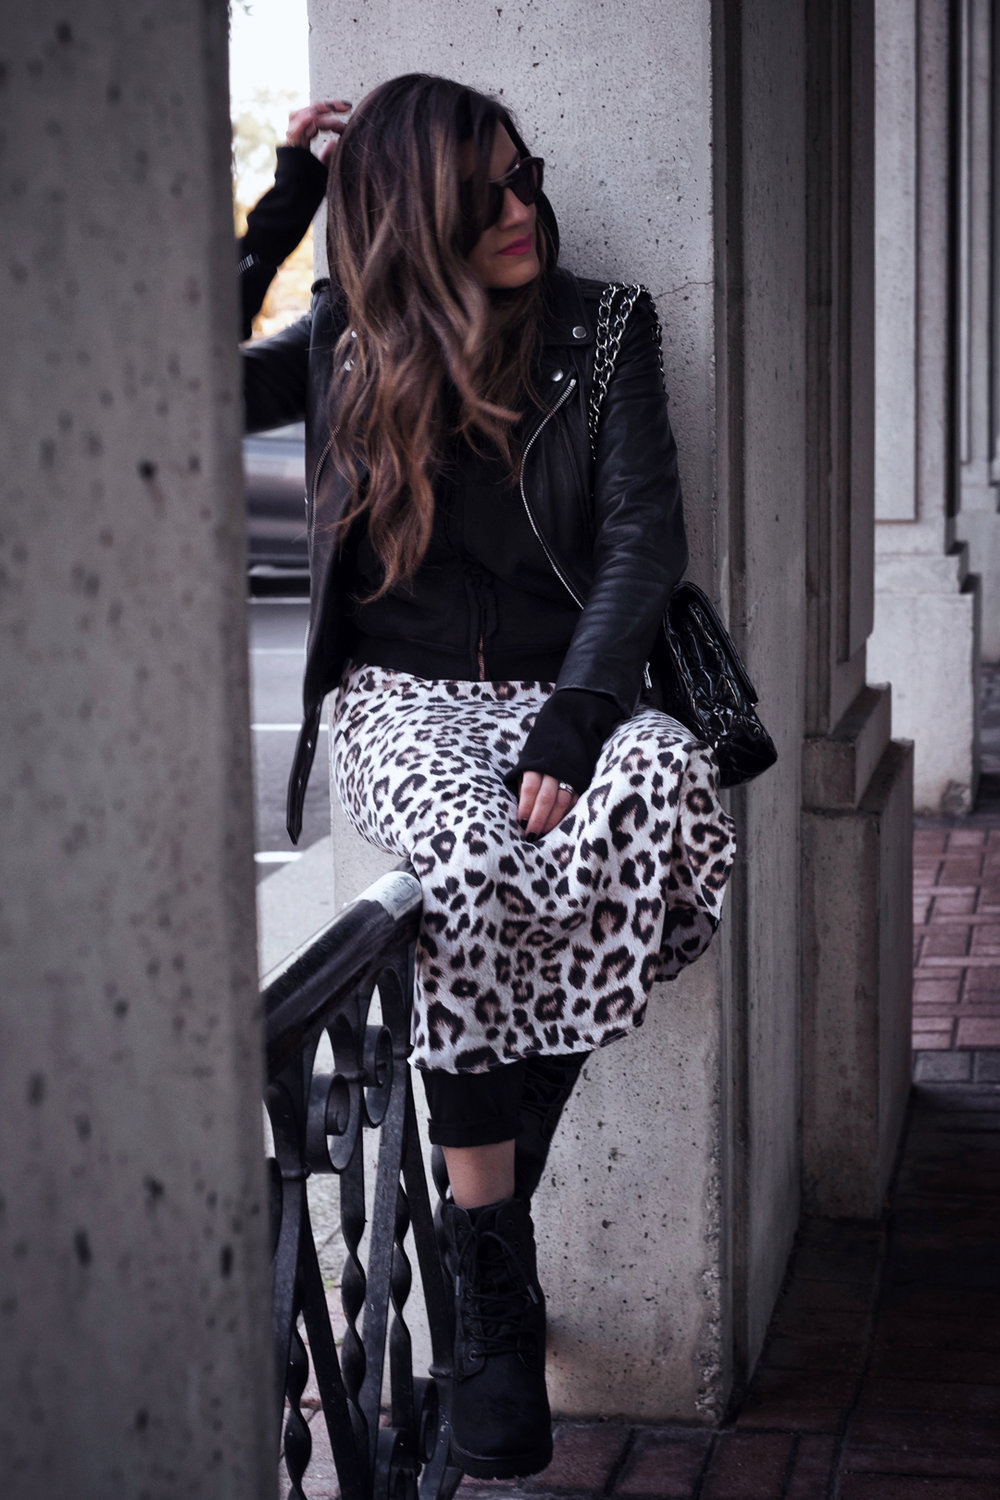 The Kooples leather moto jacket, Frank & Eileen hoodie and joggers, Equipment leopard print silk dress, Cougar Darbi Small Batch boots - photos by Melanie Rees for woahstyle.com by nathalie martin.JPG